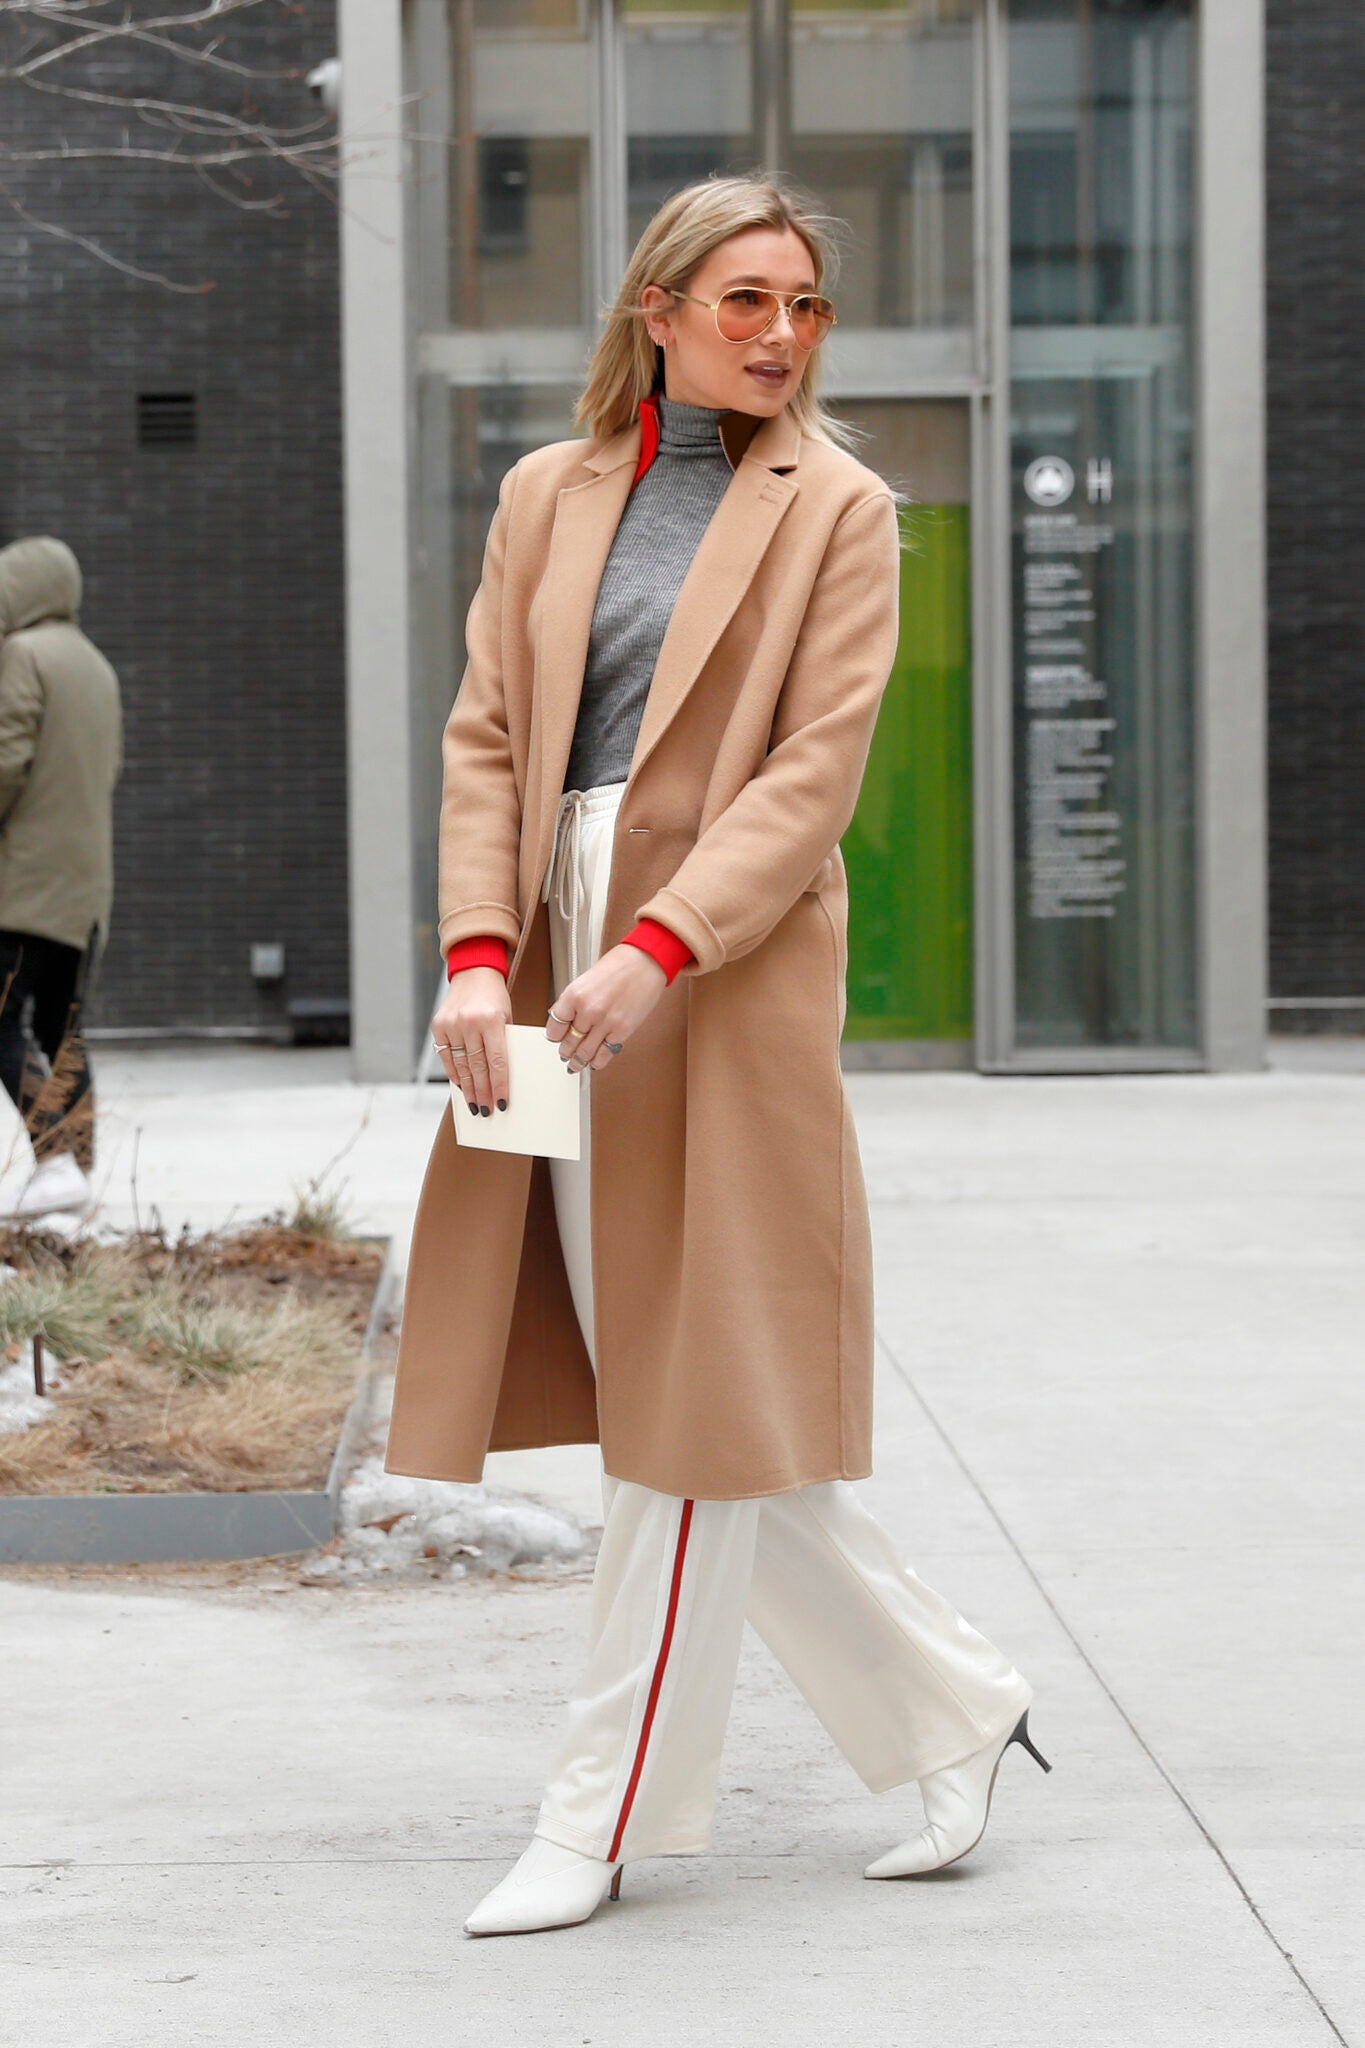 Who What Wear's Daniel Bernstein, wearing Maison Margiela white striped pants, Tory Burch camel coat and The Kooples' top, attends Tory Burch Fall-Winter 2017-18 show at Whitney Museum during New York Fashion Week in New York City on February 14, 2017. Pictured: Danielle Bernstein Ref: SPL1451070 140217 Picture by: Christopher Peterson/Splash News Splash News and Pictures Los Angeles: 310-821-2666 New York: 212-619-2666 London: 870-934-2666 photodesk@splashnews.com